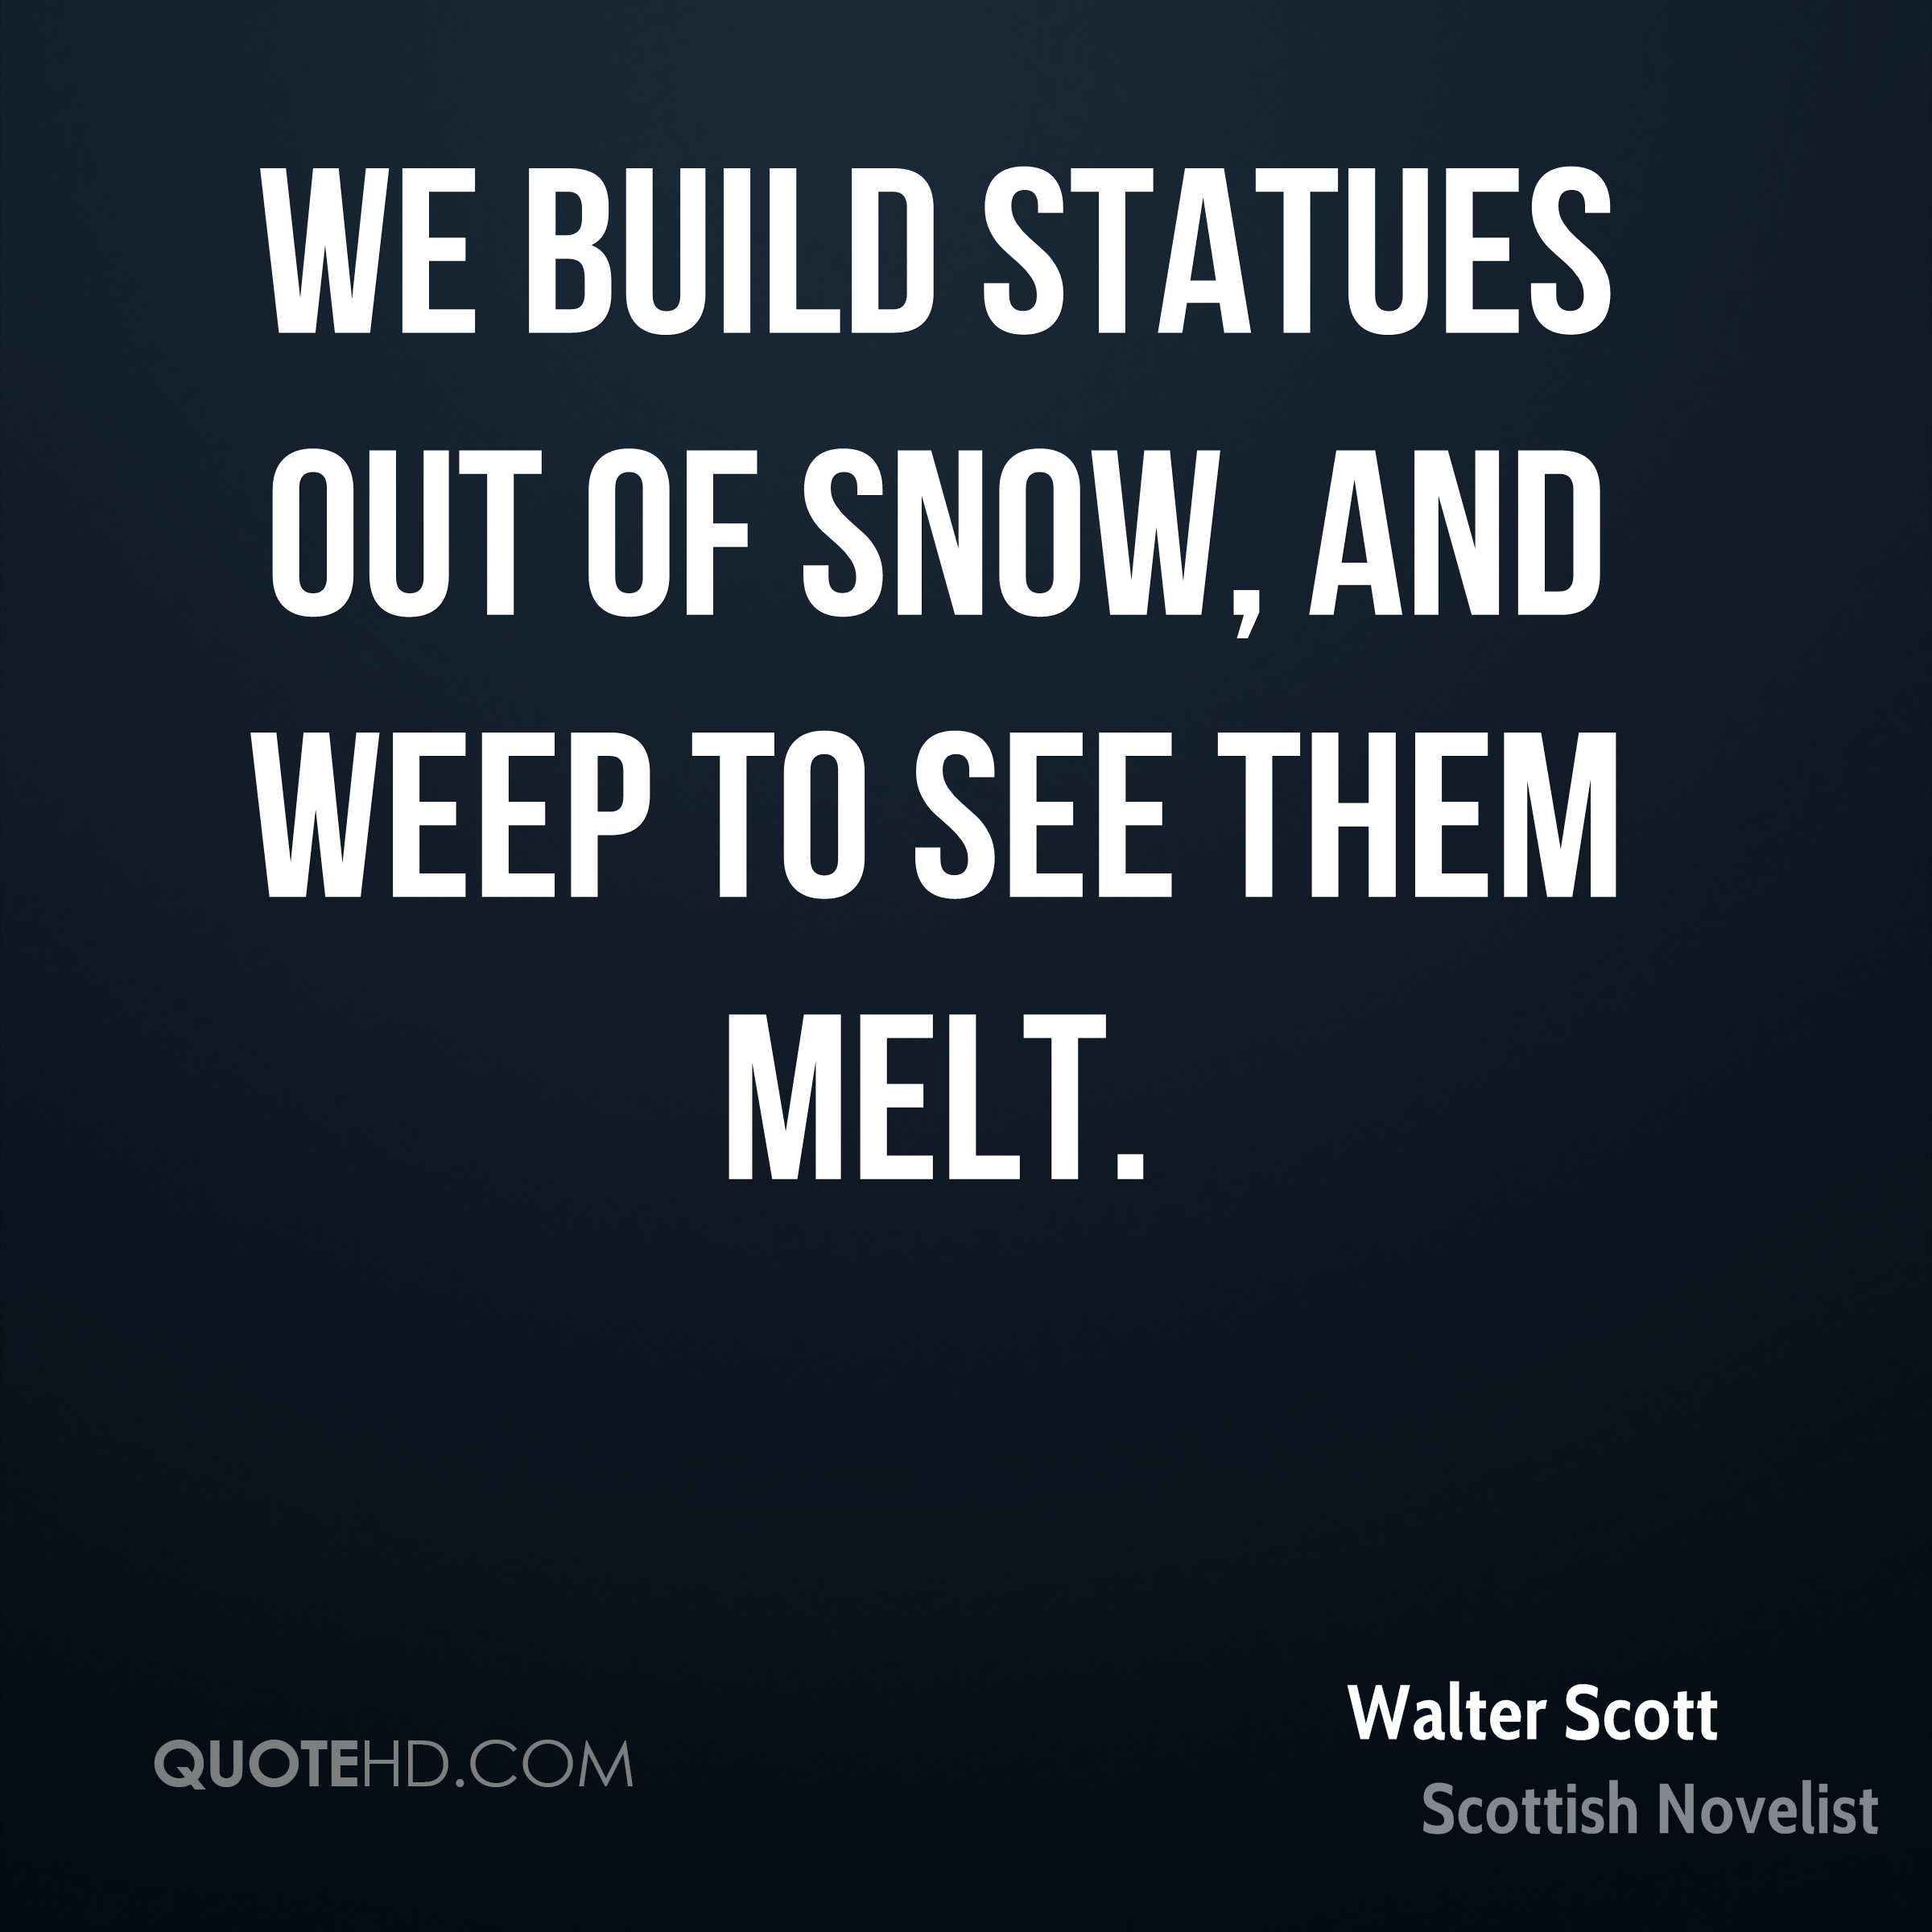 We build statues out of snow, and weep to see them melt.